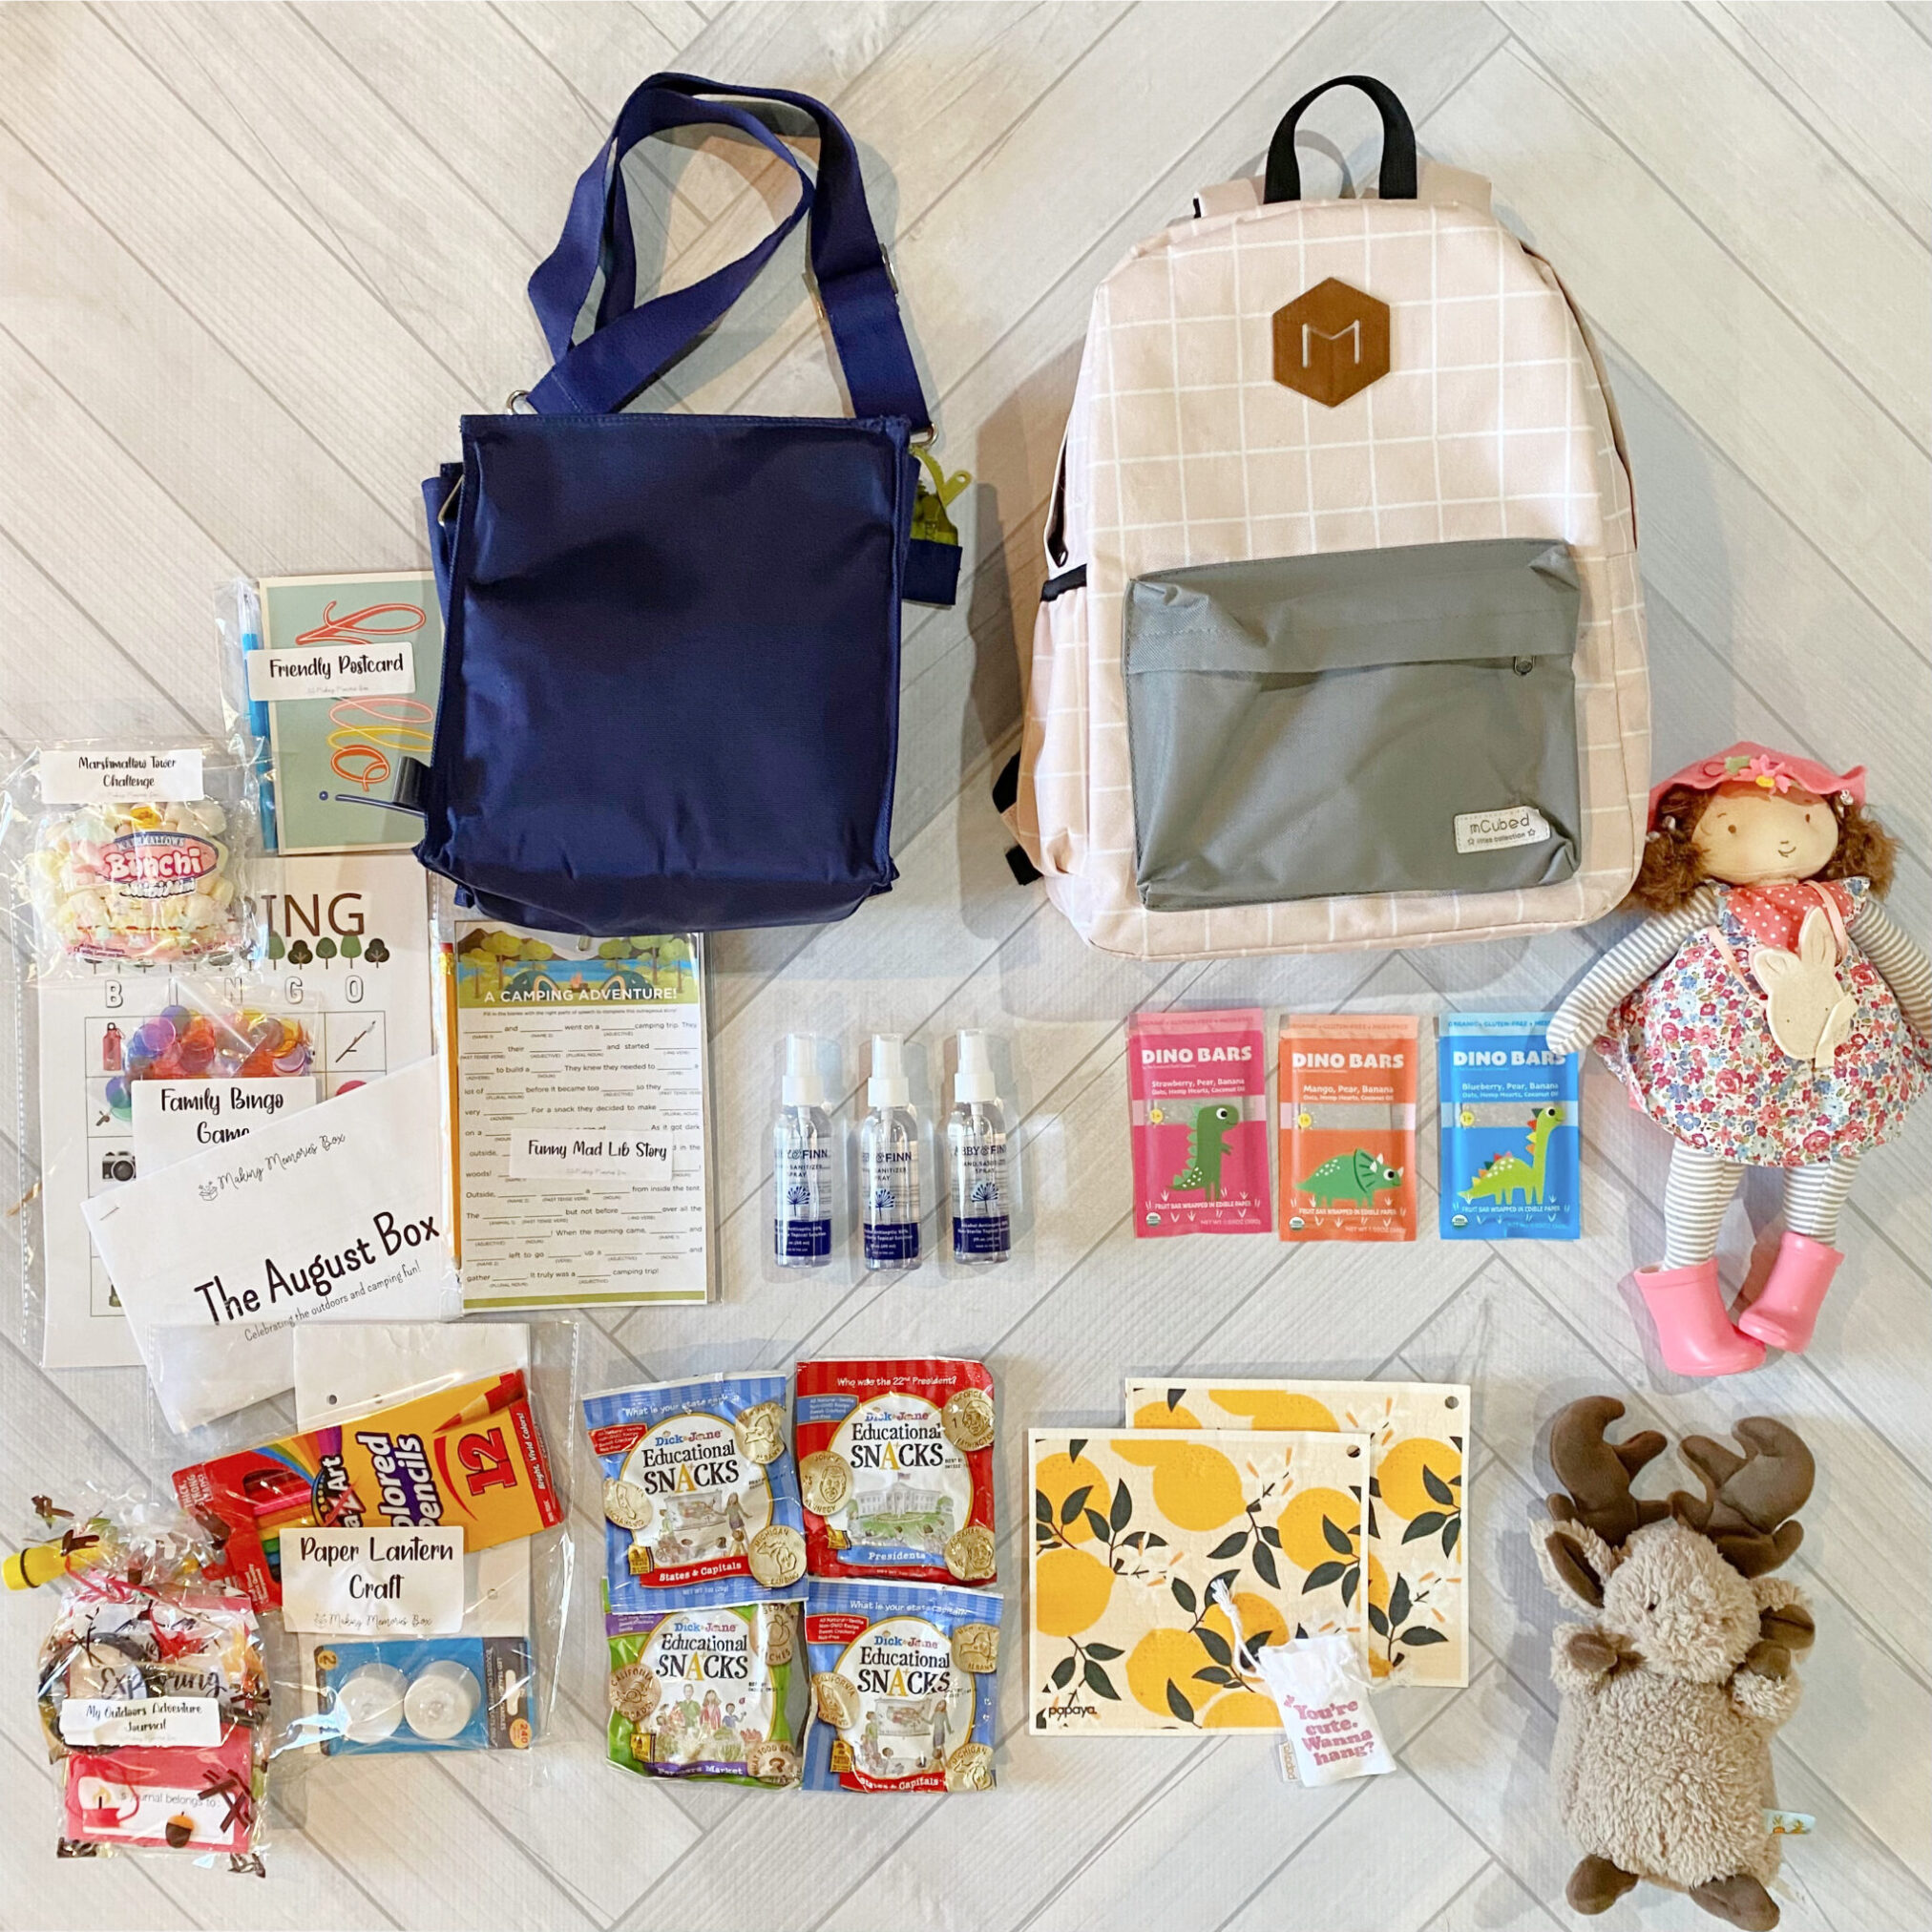 fGet back to school with our favorite kids brands avorite back to school products